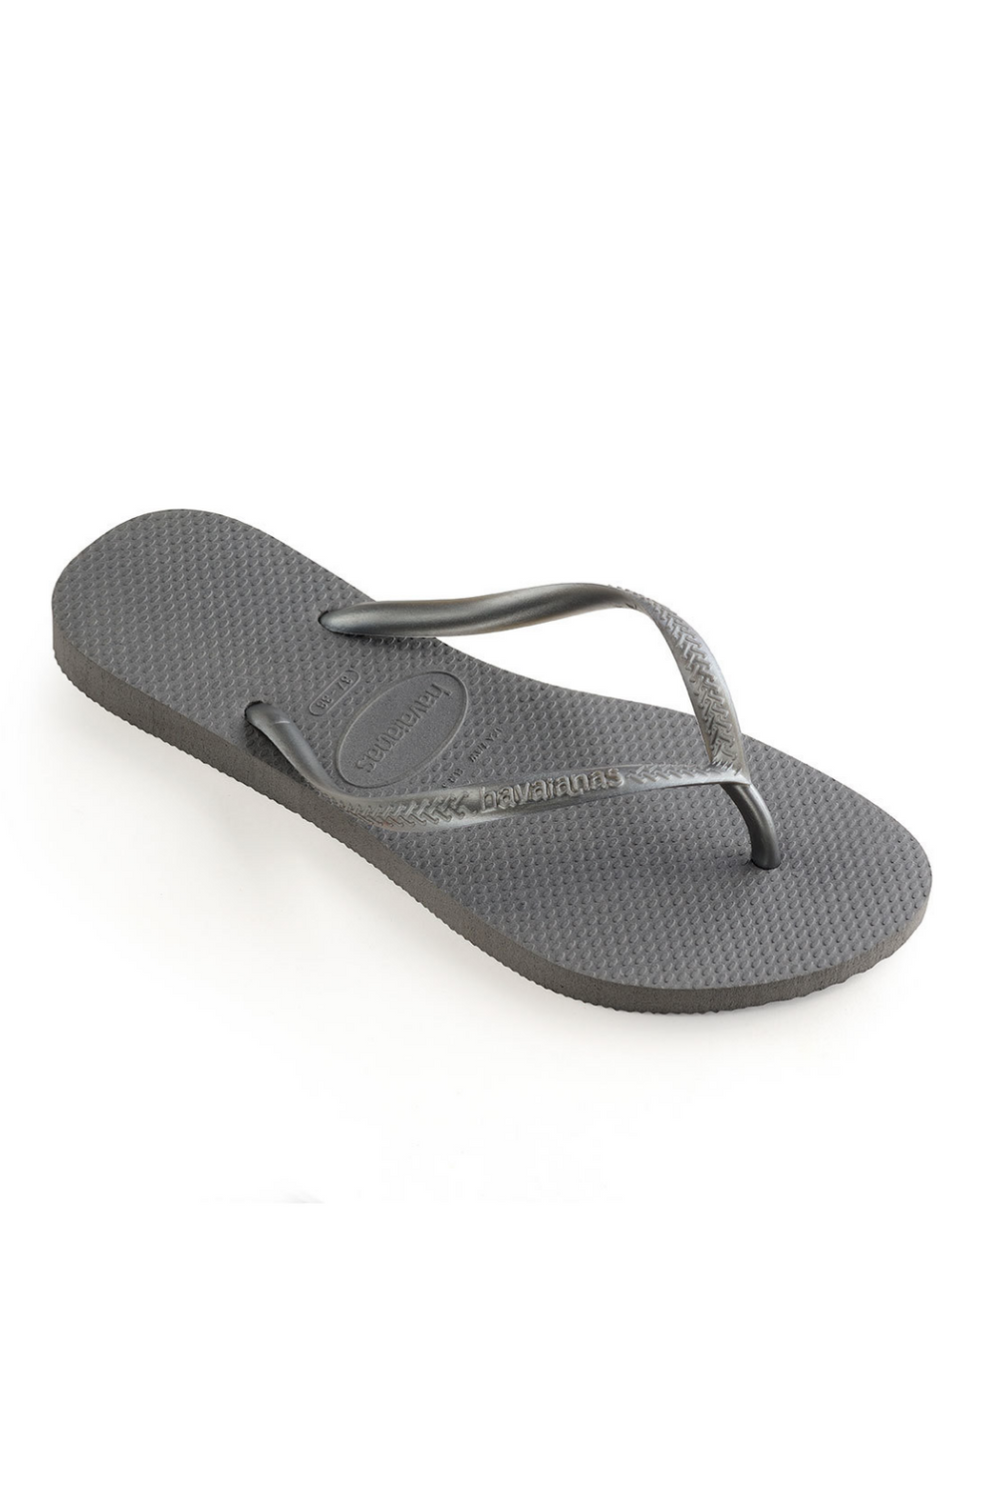 The Slim Flip Flop - Steel Grey